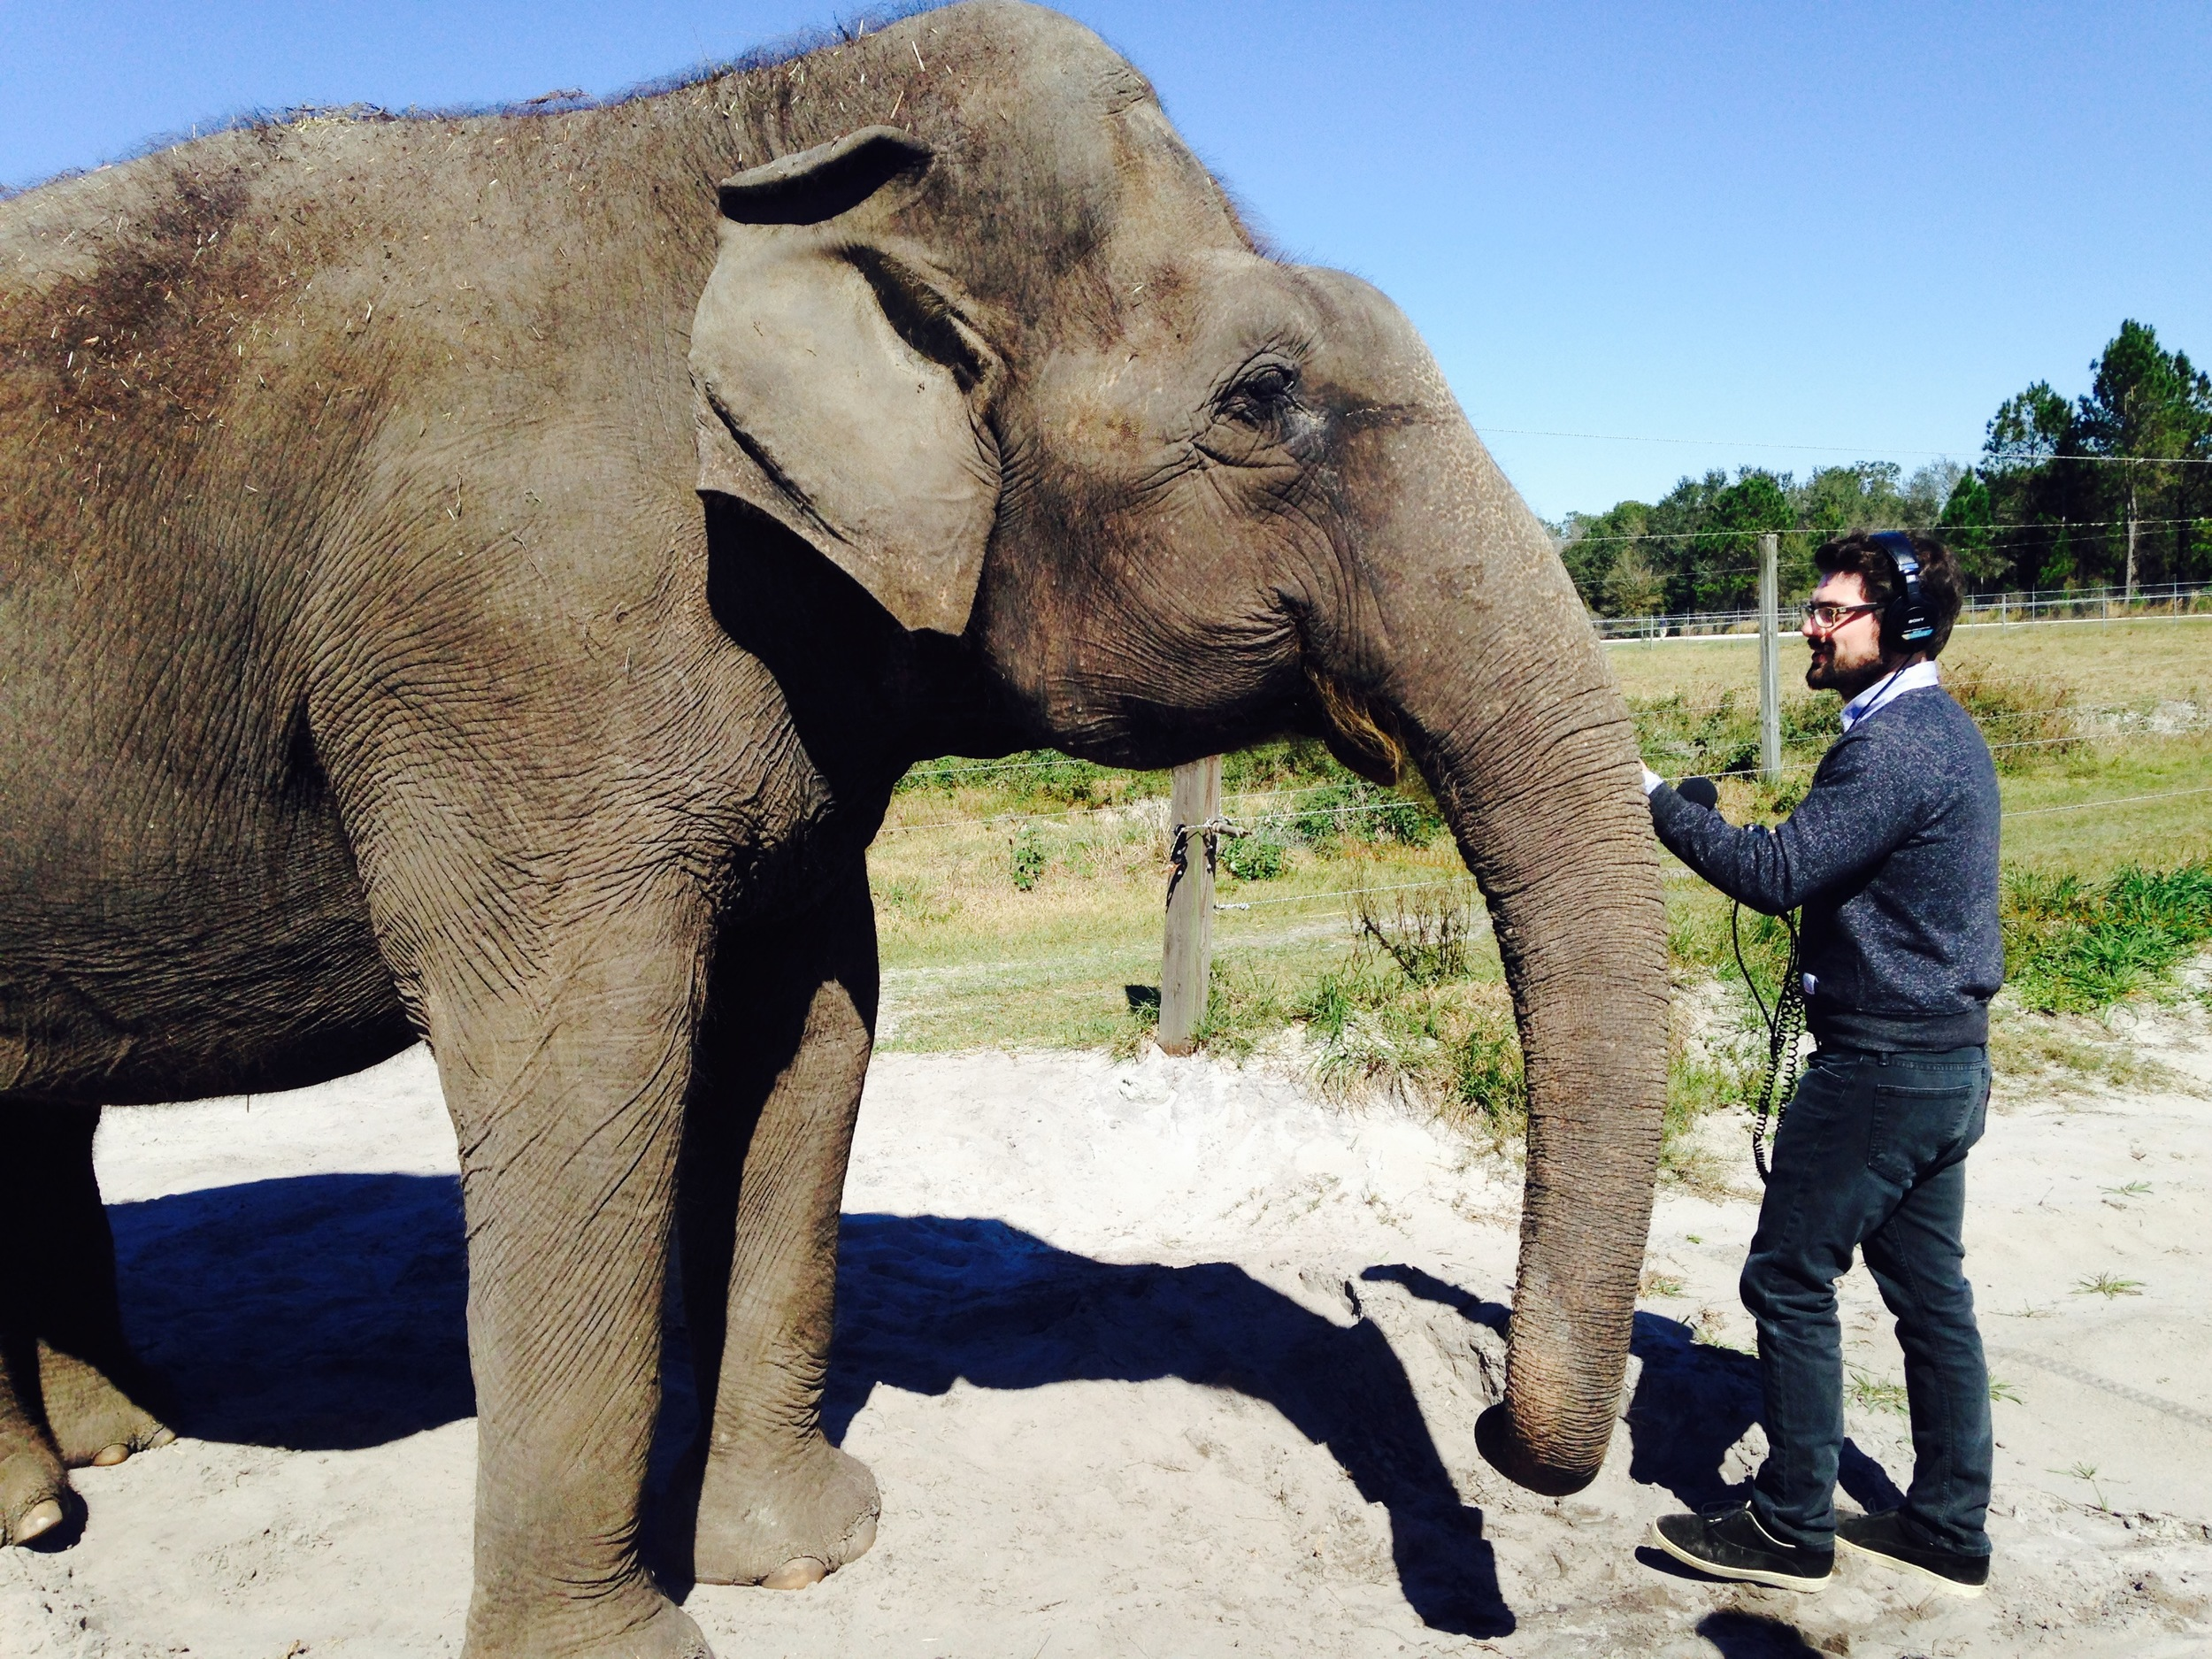 This is a picture of me with an elephant.